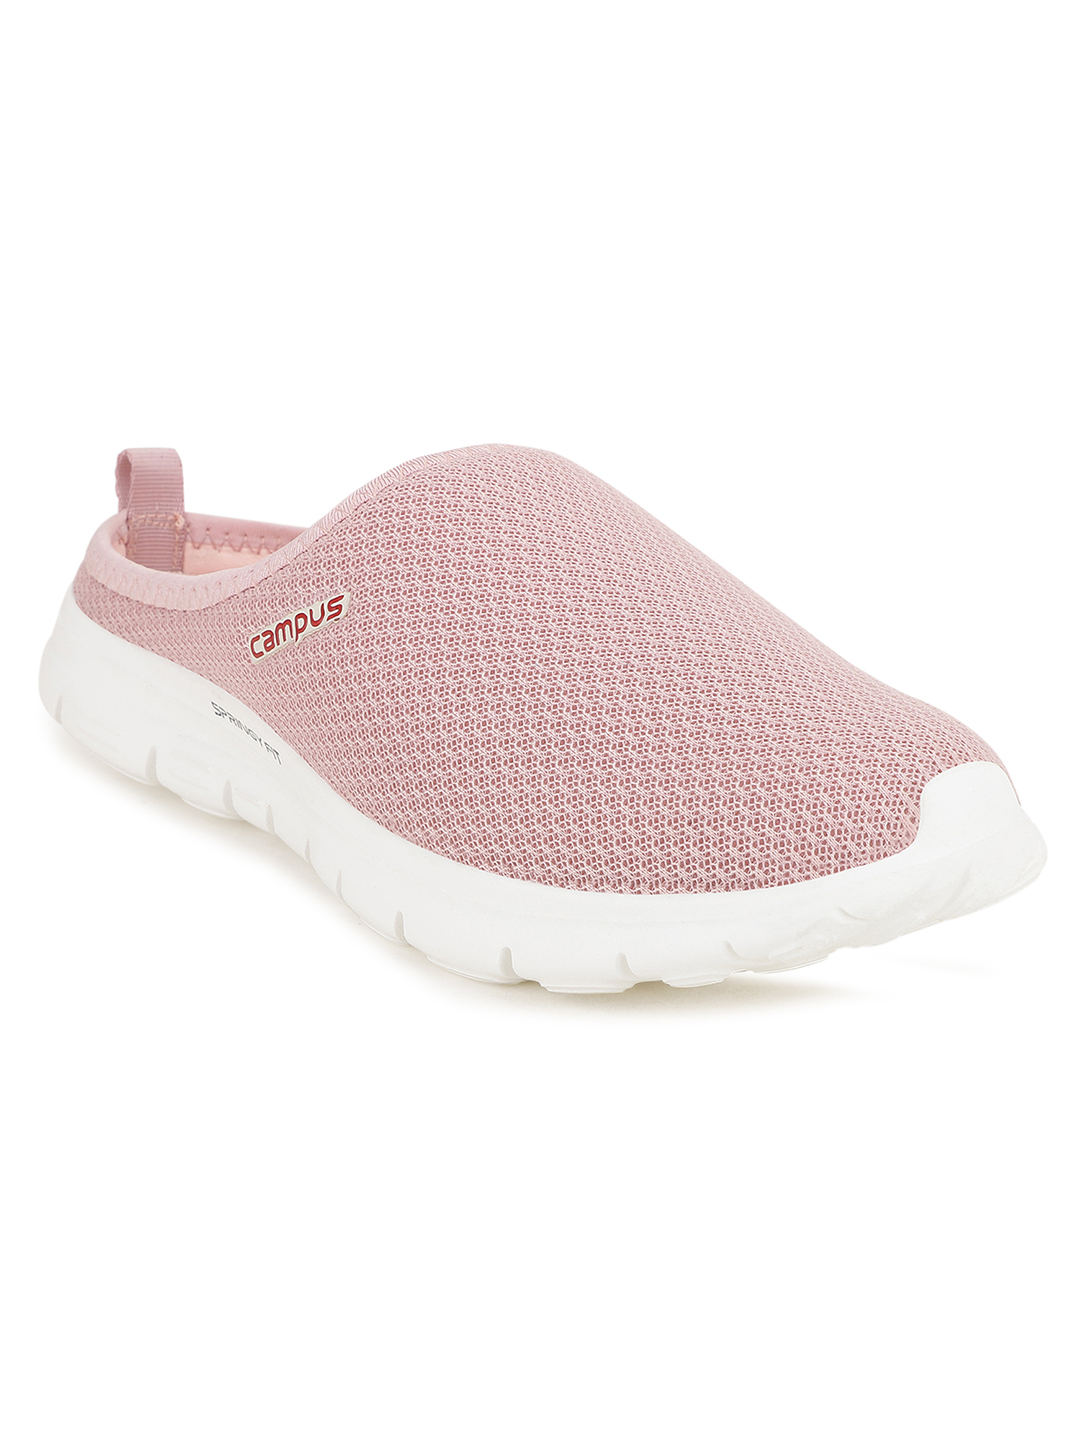 Campus Shoes | Pink Berry Running Shoes